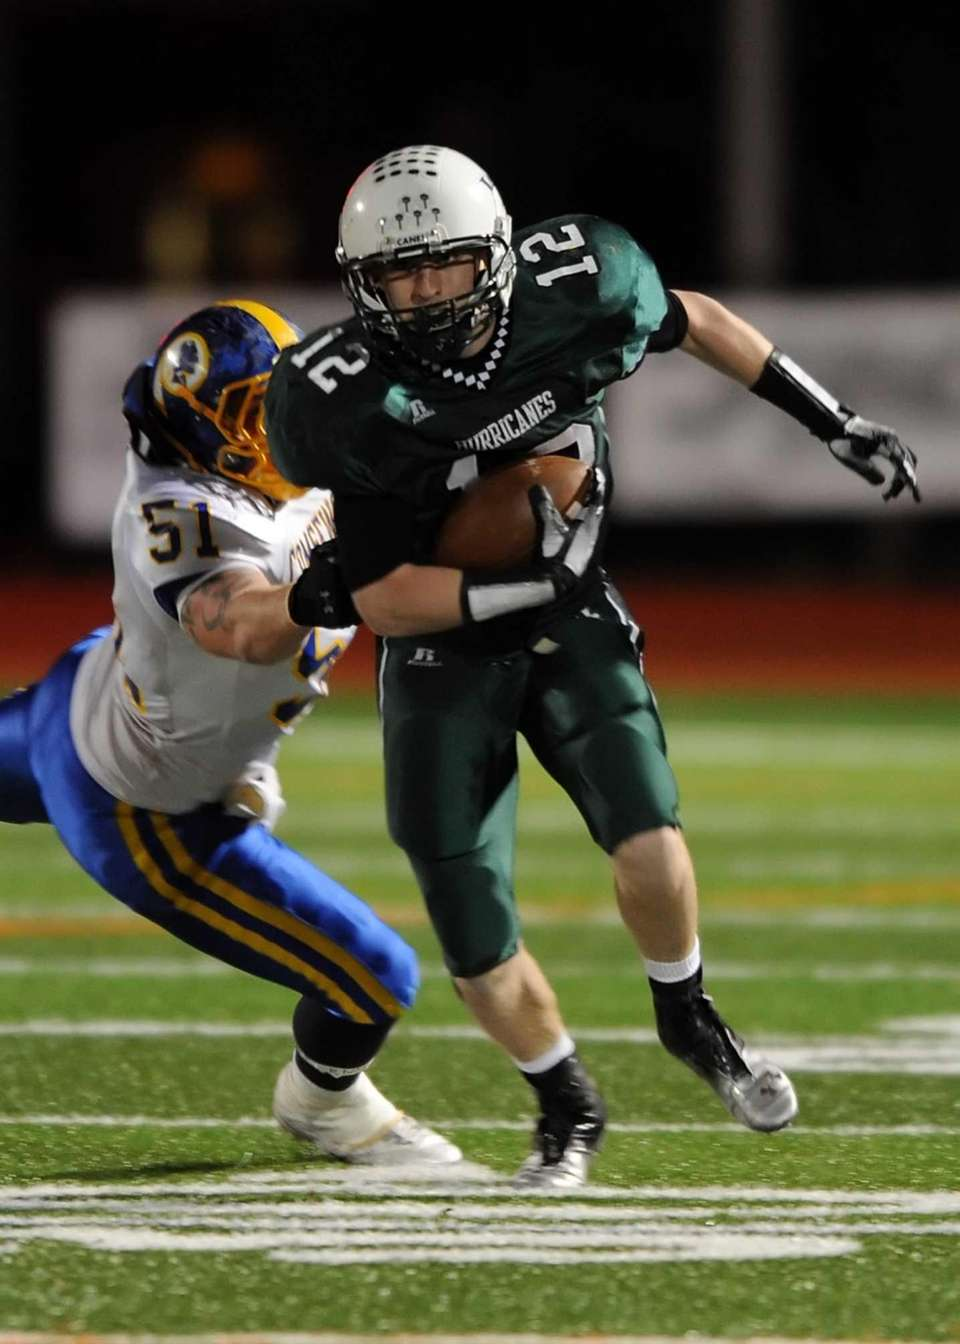 Westhampton's Brian Corrigan breaks to the outside. (Nov.